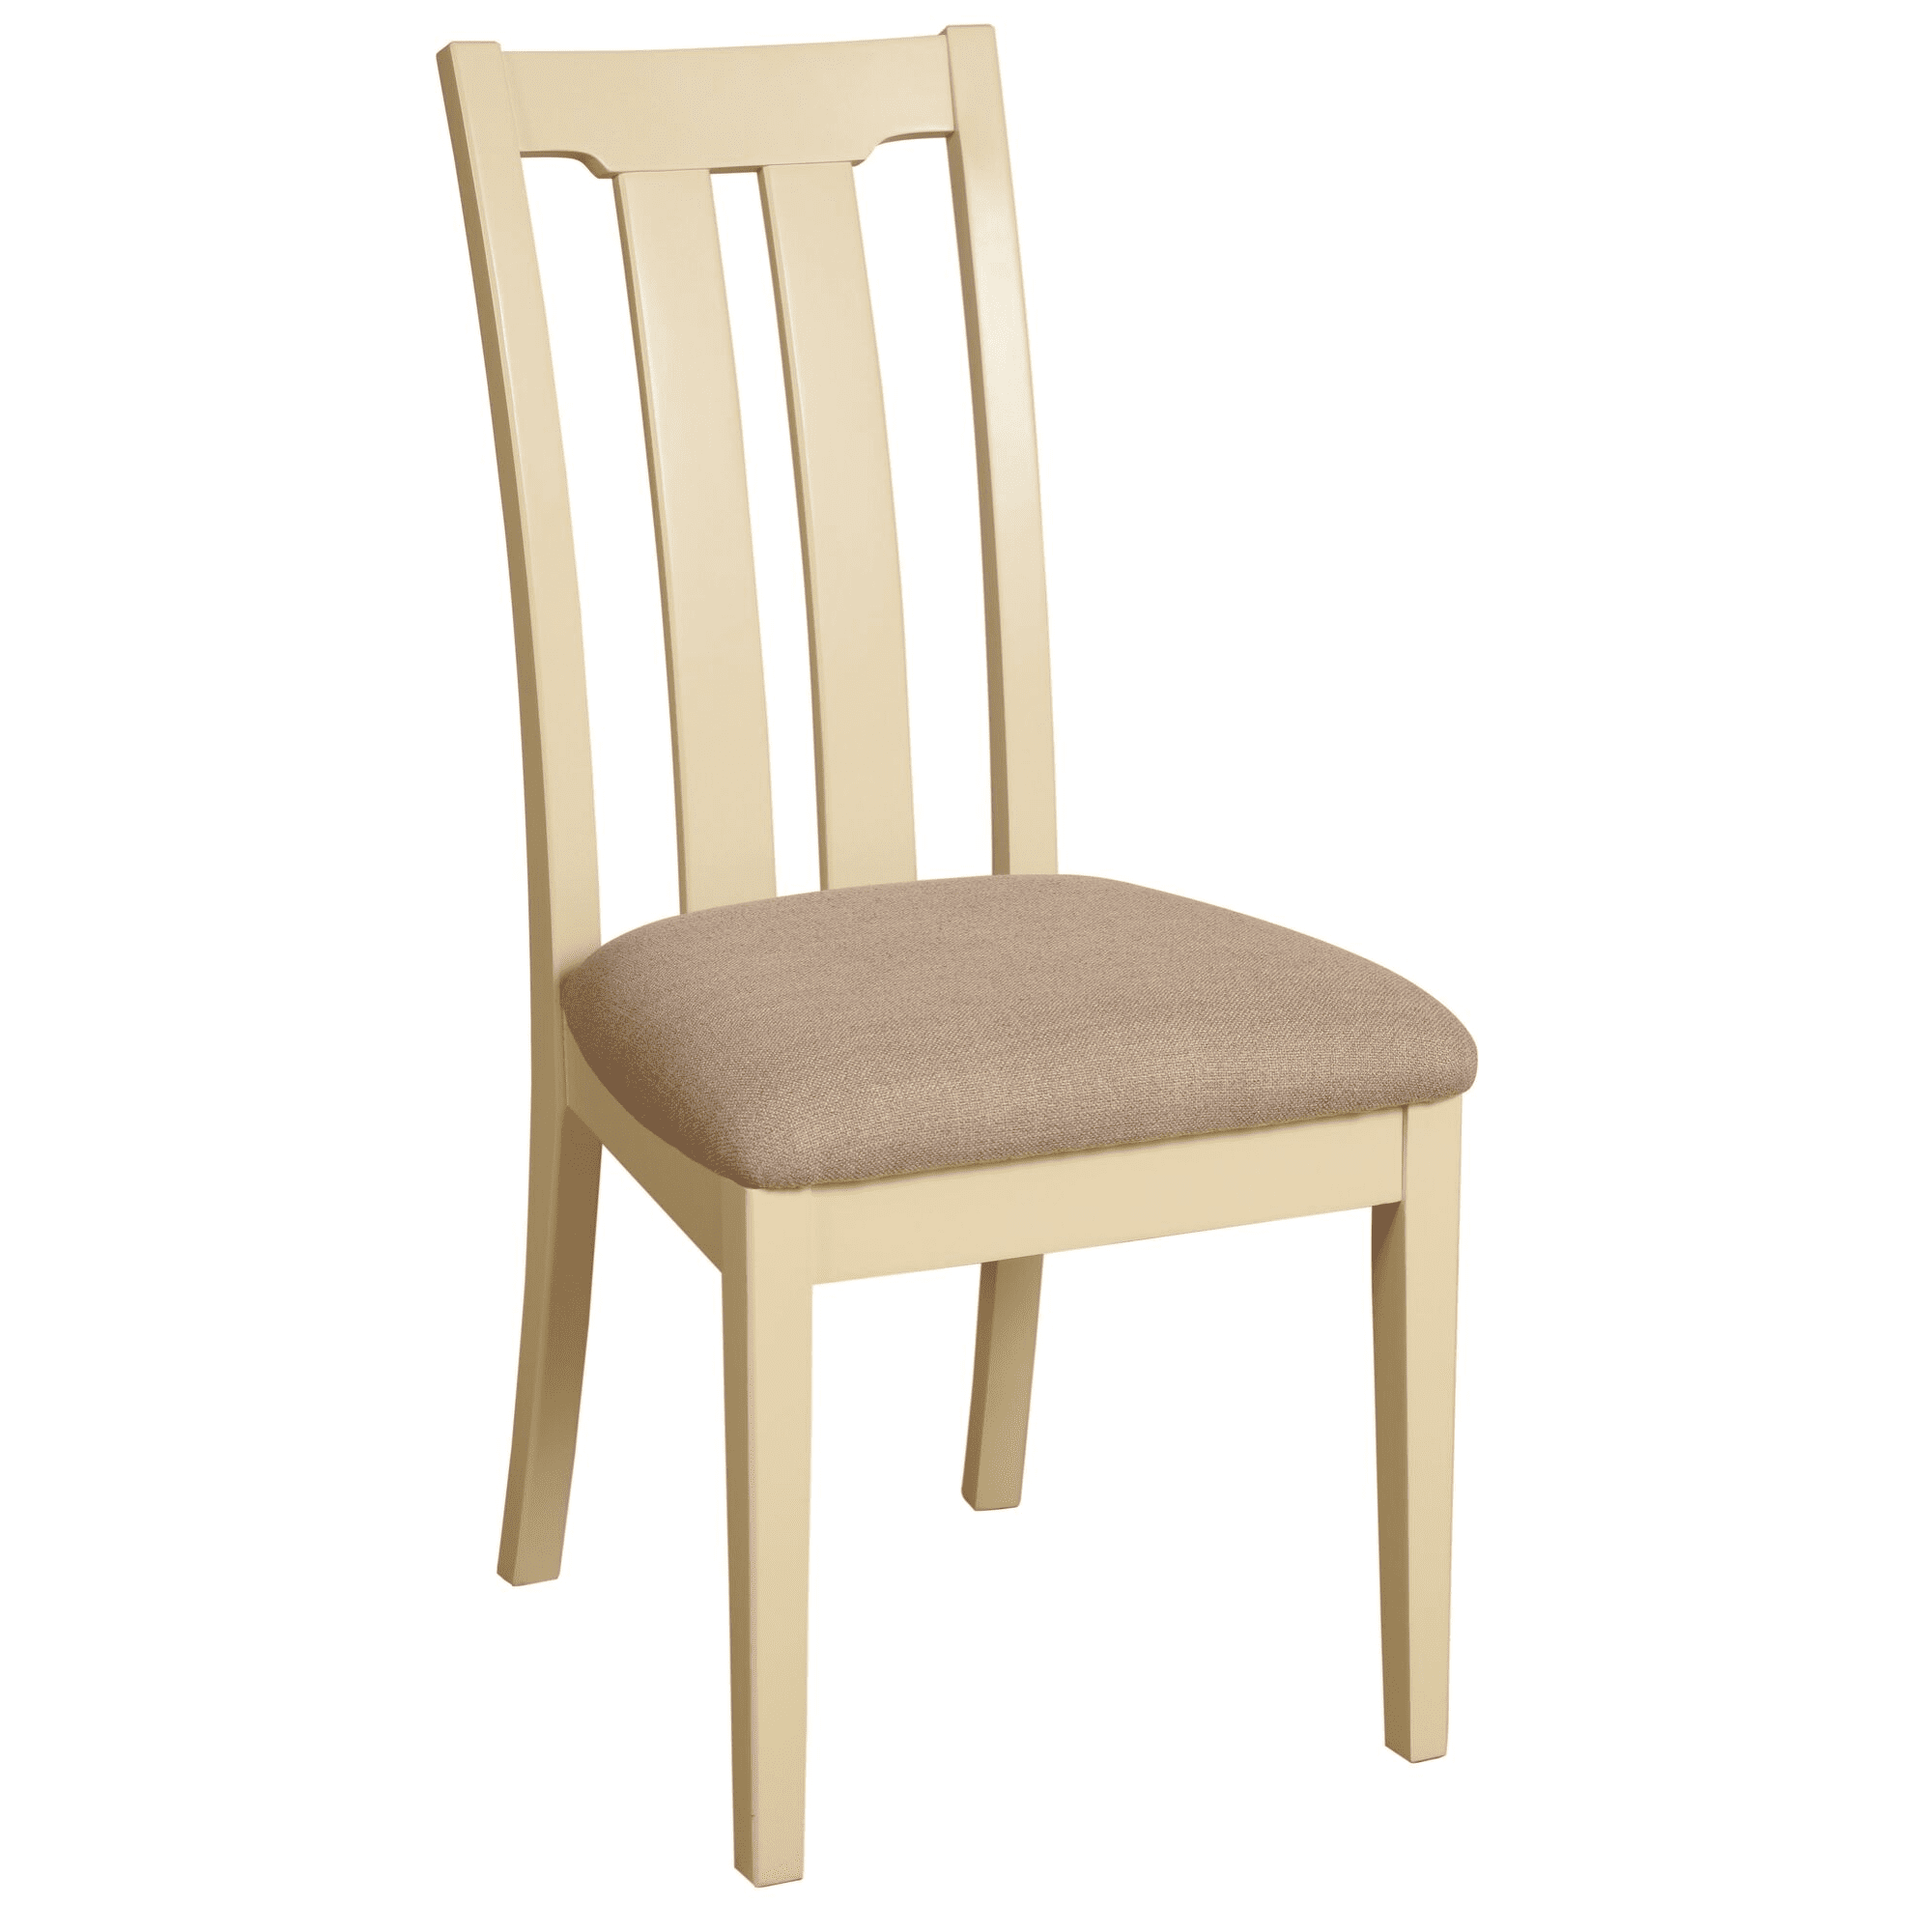 LH08 Lundy painted slat back chair